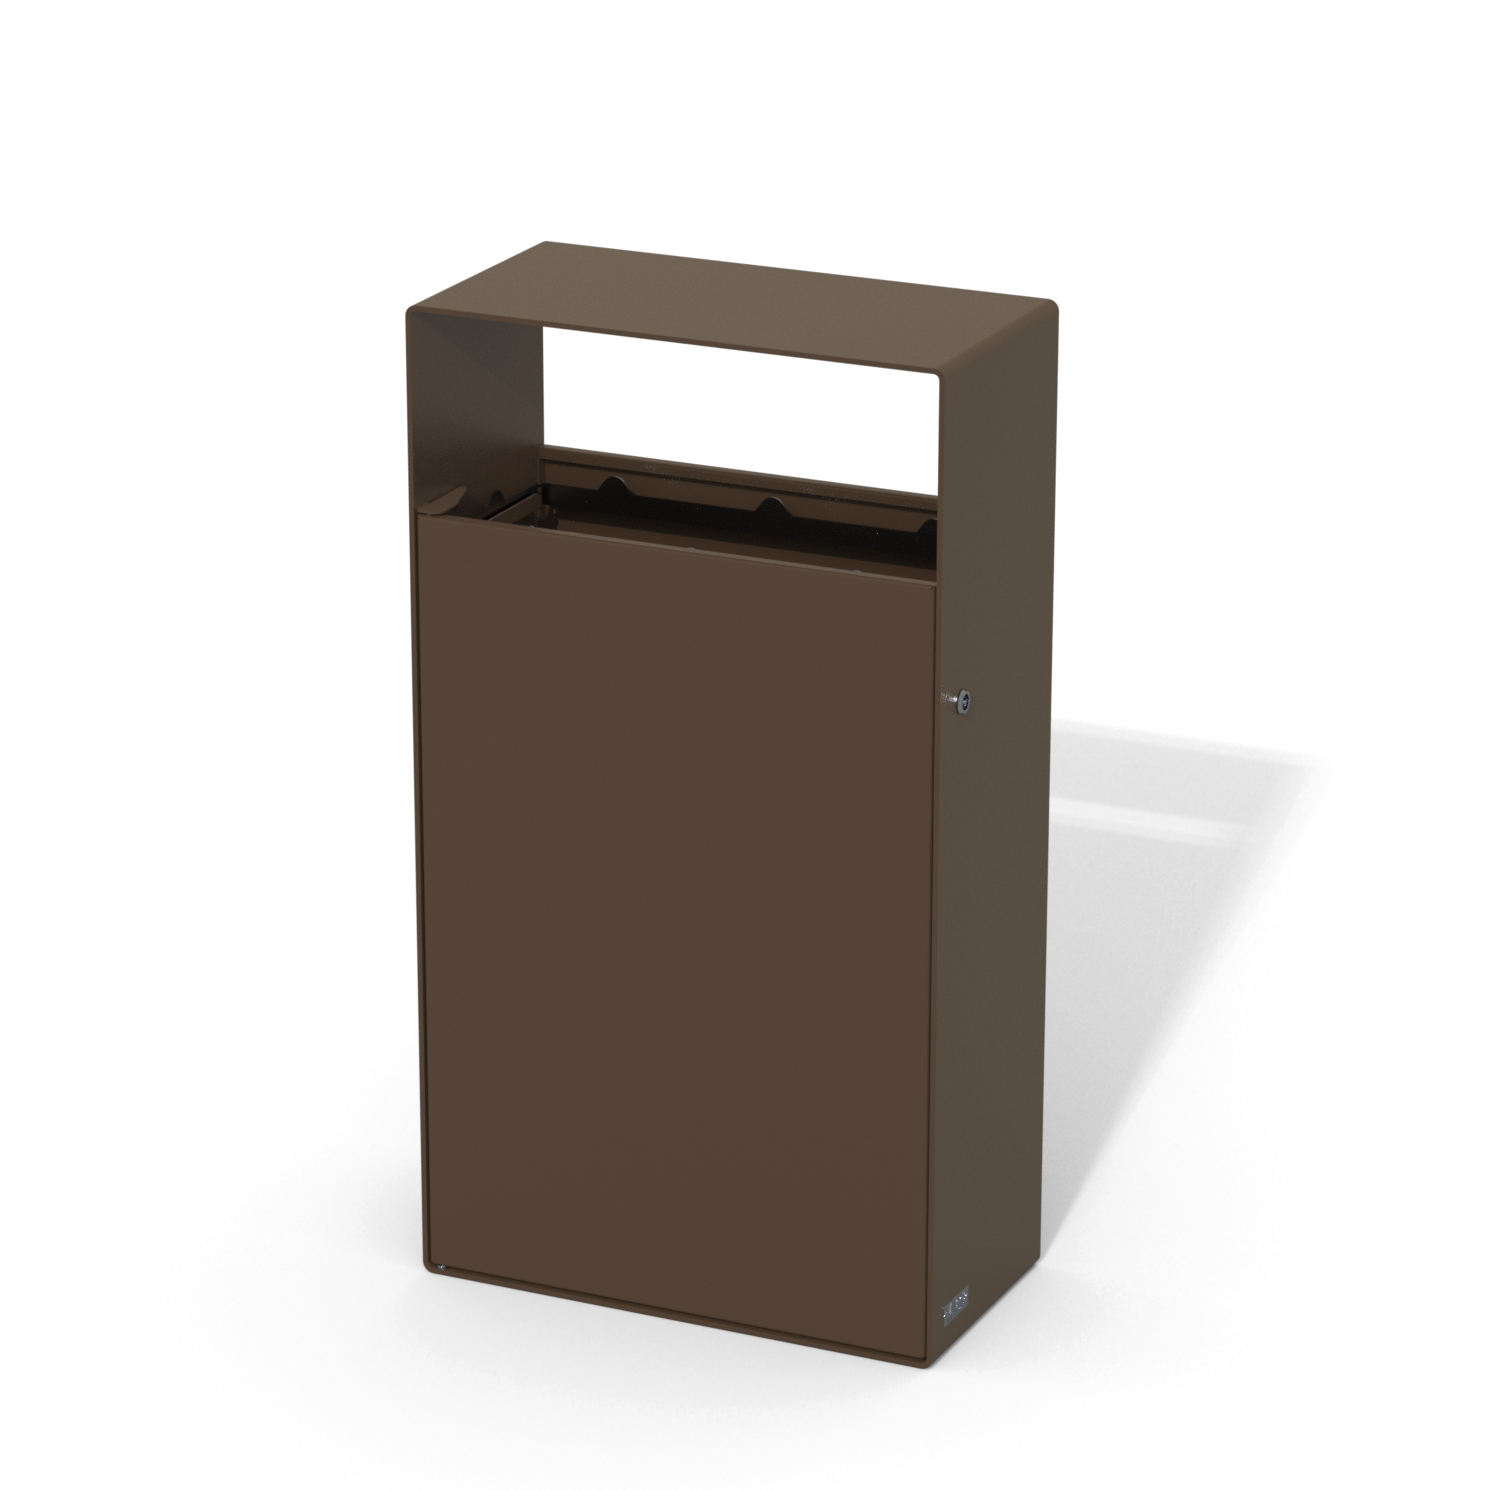 street furniture ground-floor litter bin in steel LAB23